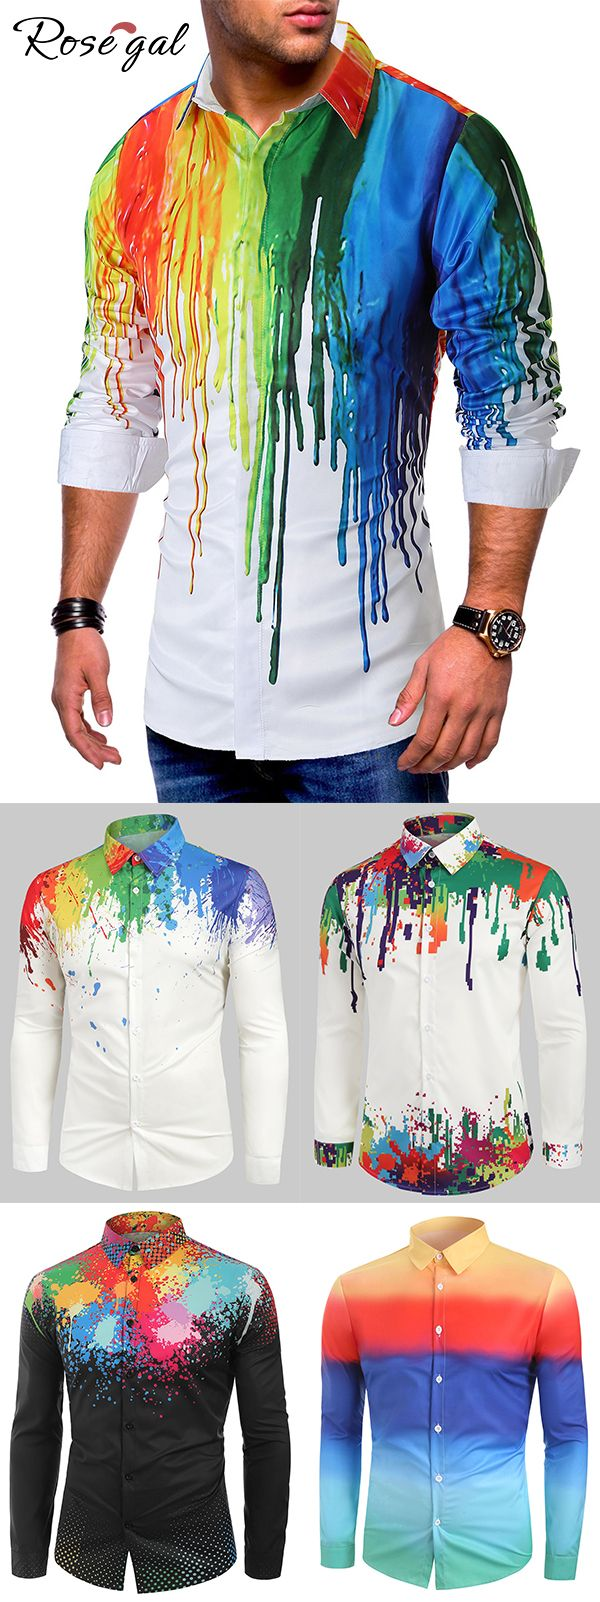 Rosegal Colorful Painting Splatter Print Long Sleeves Casual Shirt mens outfits ideas 3